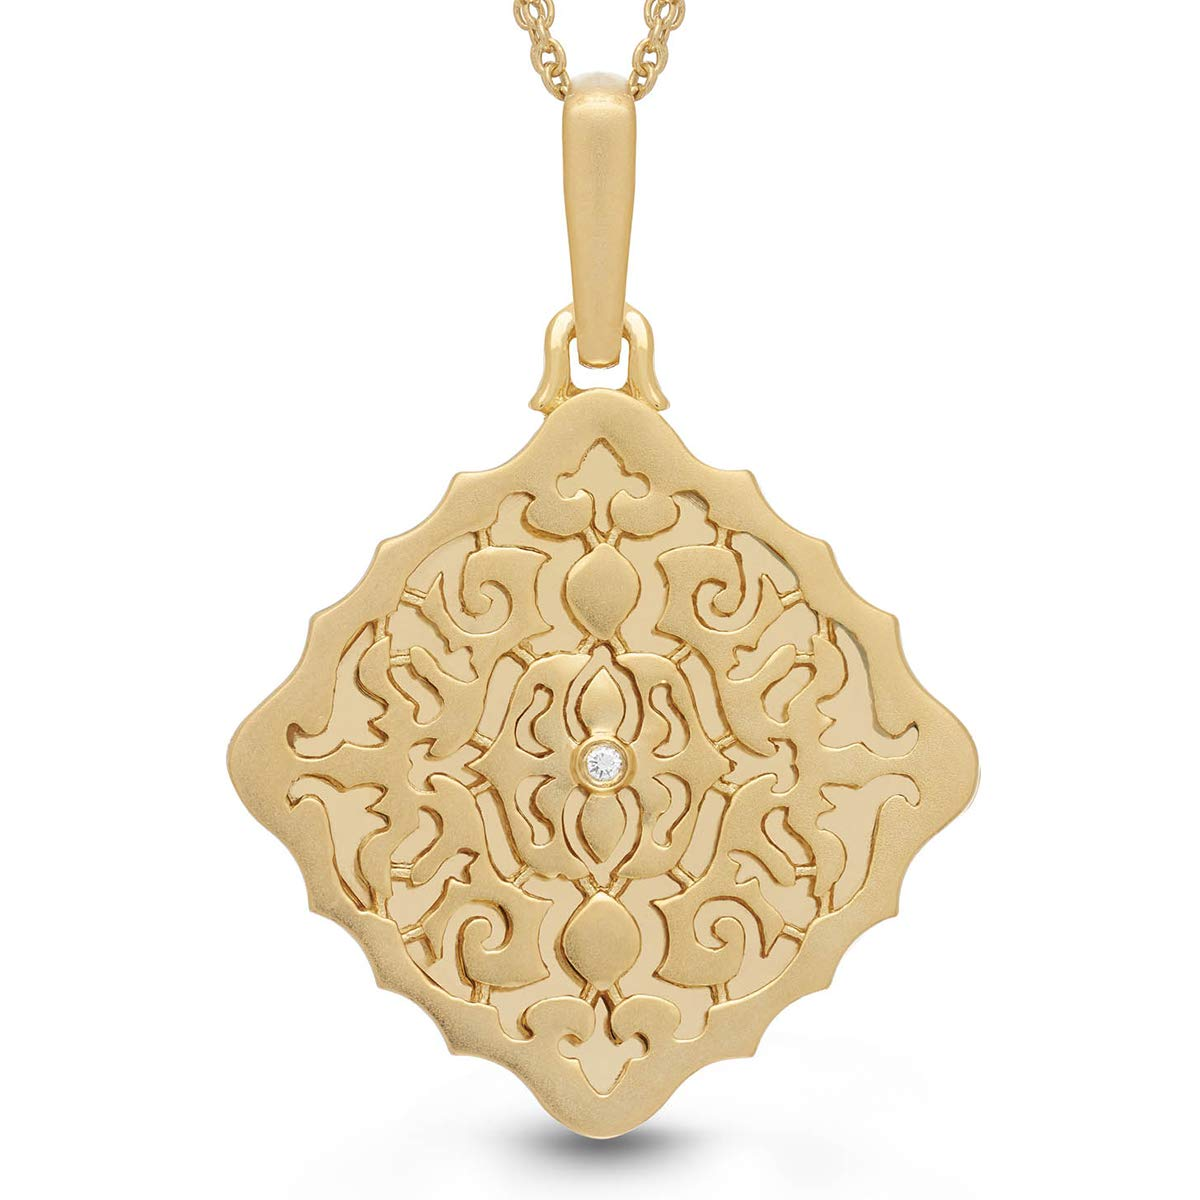 With You Lockets-Fine Yellow Gold-Custom Photo Locket Necklace-That Holds Pictures For Women-The Mimi